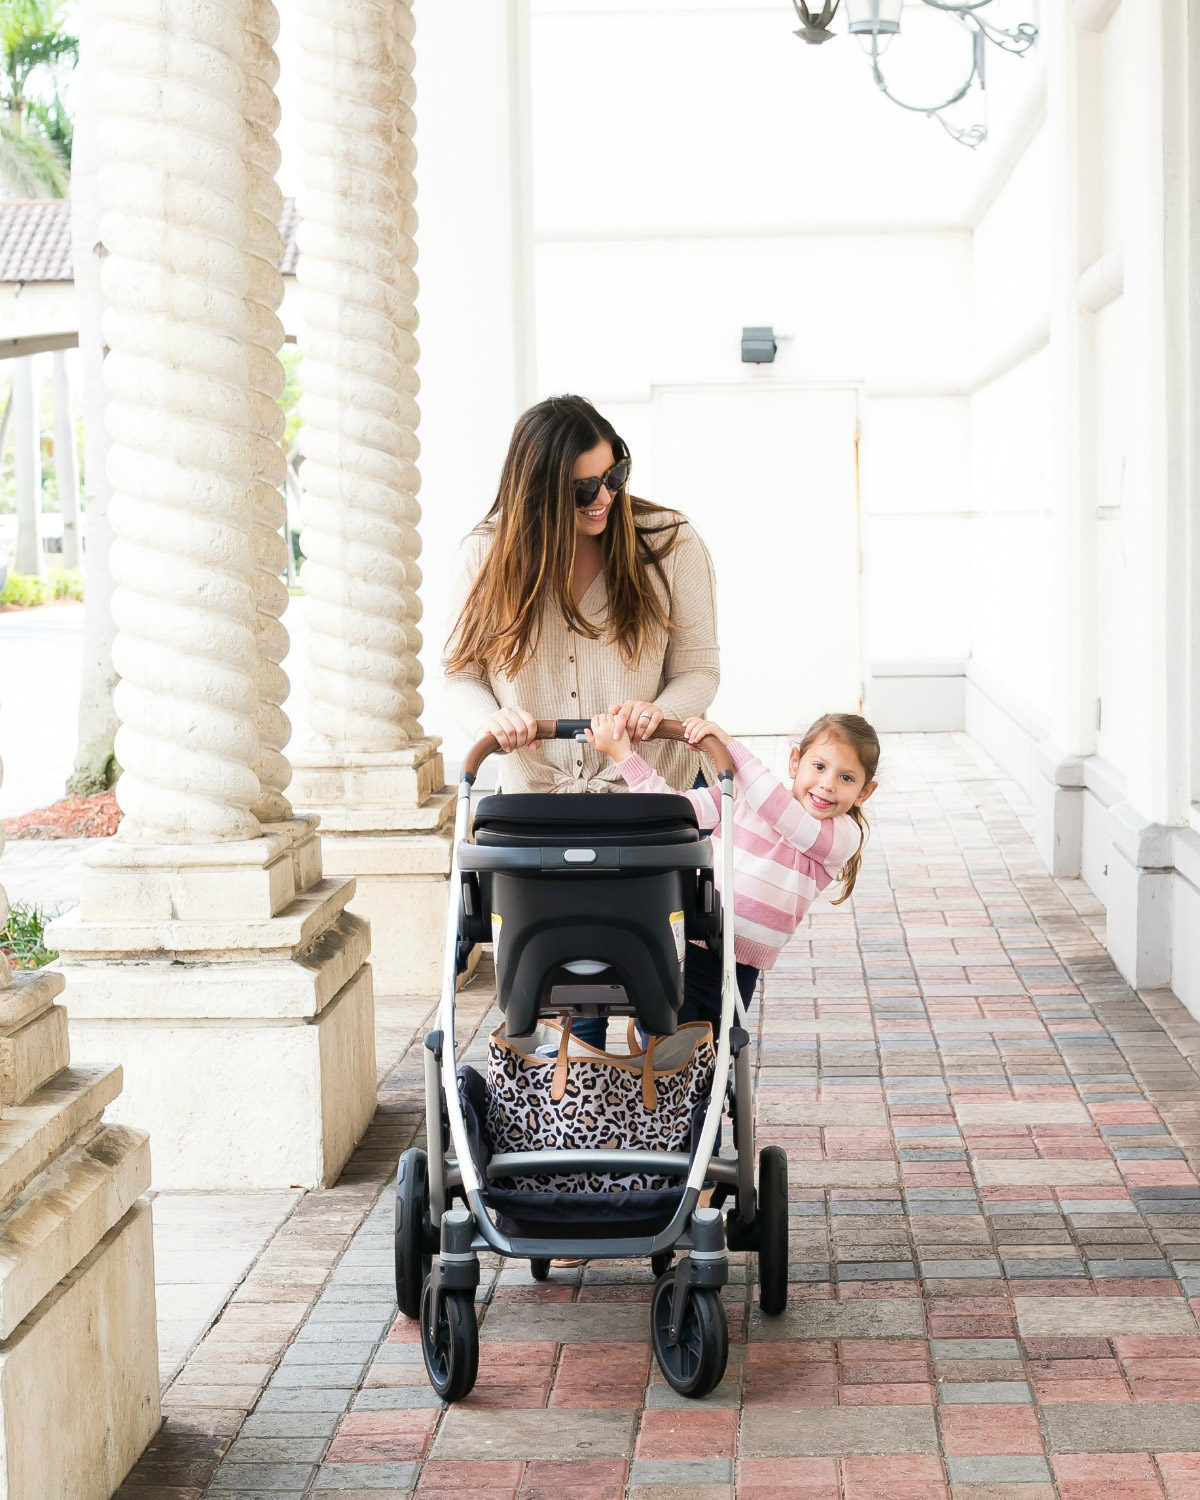 UPPAbaby stroller review by Sunflowers and Stilettos blog